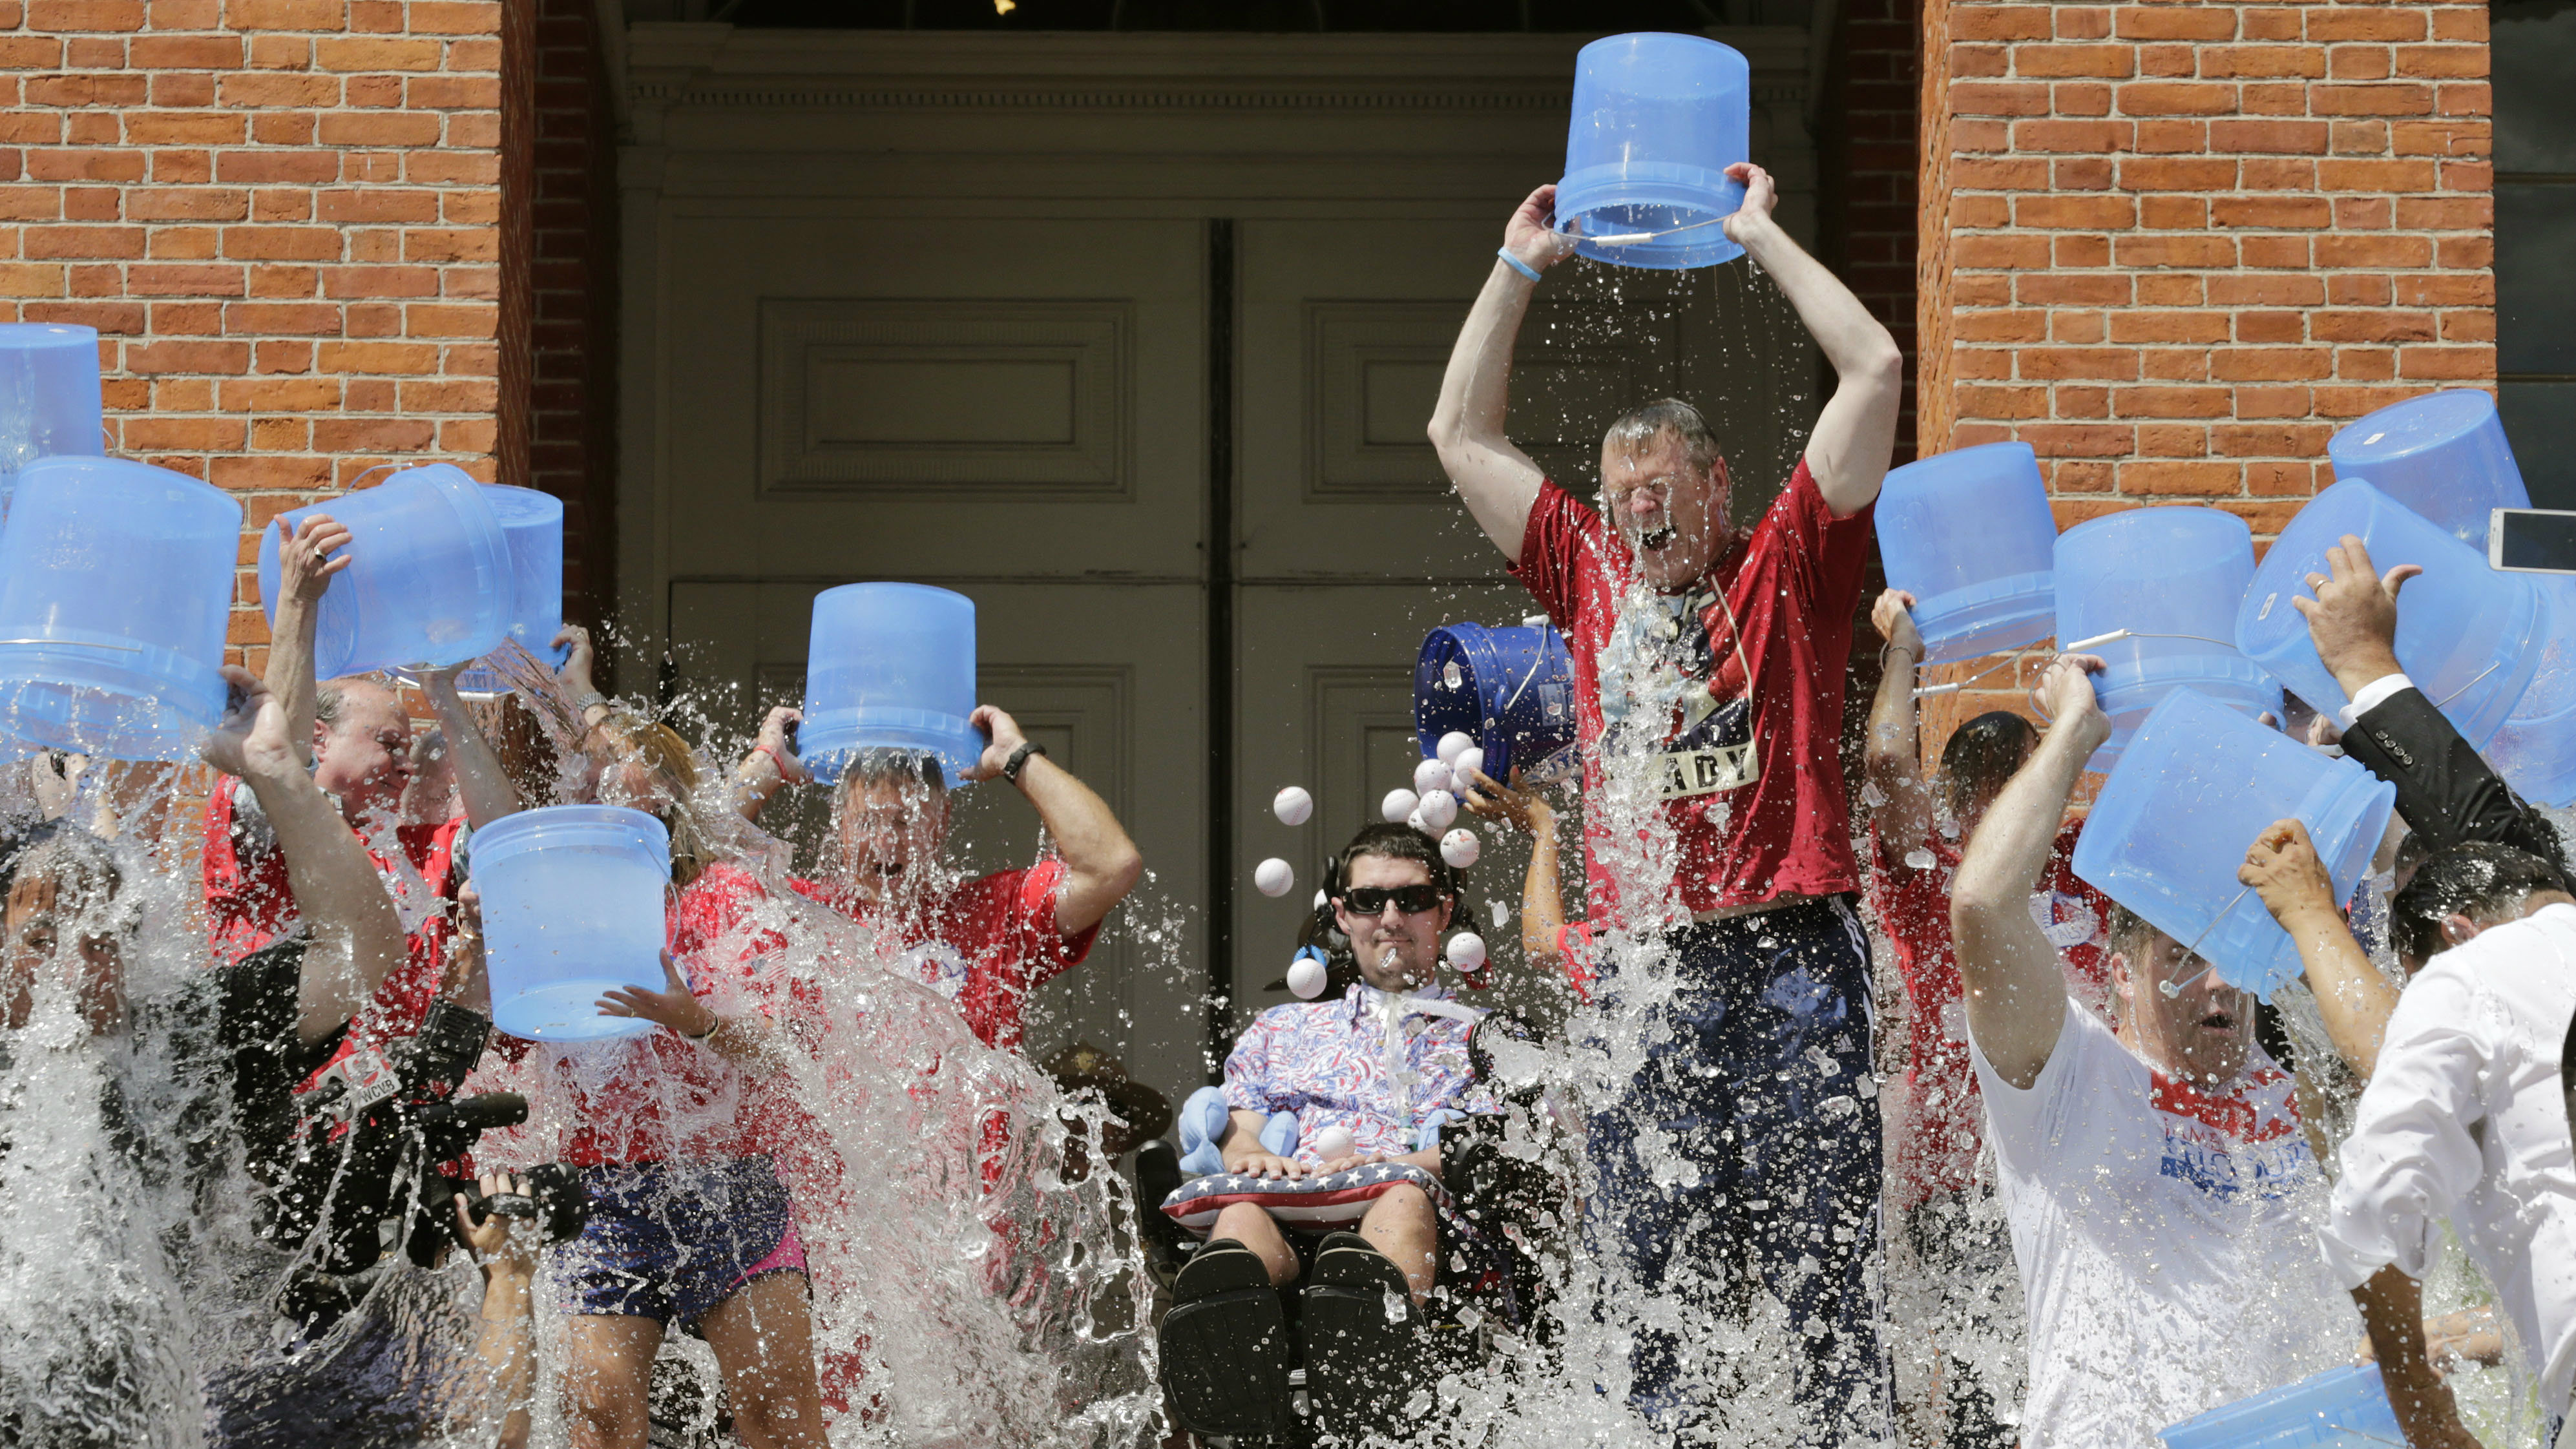 Massachusetts Gov. Charlie Baker, right center, and Lt. Gov. Karyn Polito, third from left, participate in the Ice Bucket Challenge with its inspiration Pete Frates, seated in center, to raise money for ALS research, Monday, Aug. 10, 2015, at the Statehouse in Boston. (AP Photo/Charles Krupa)